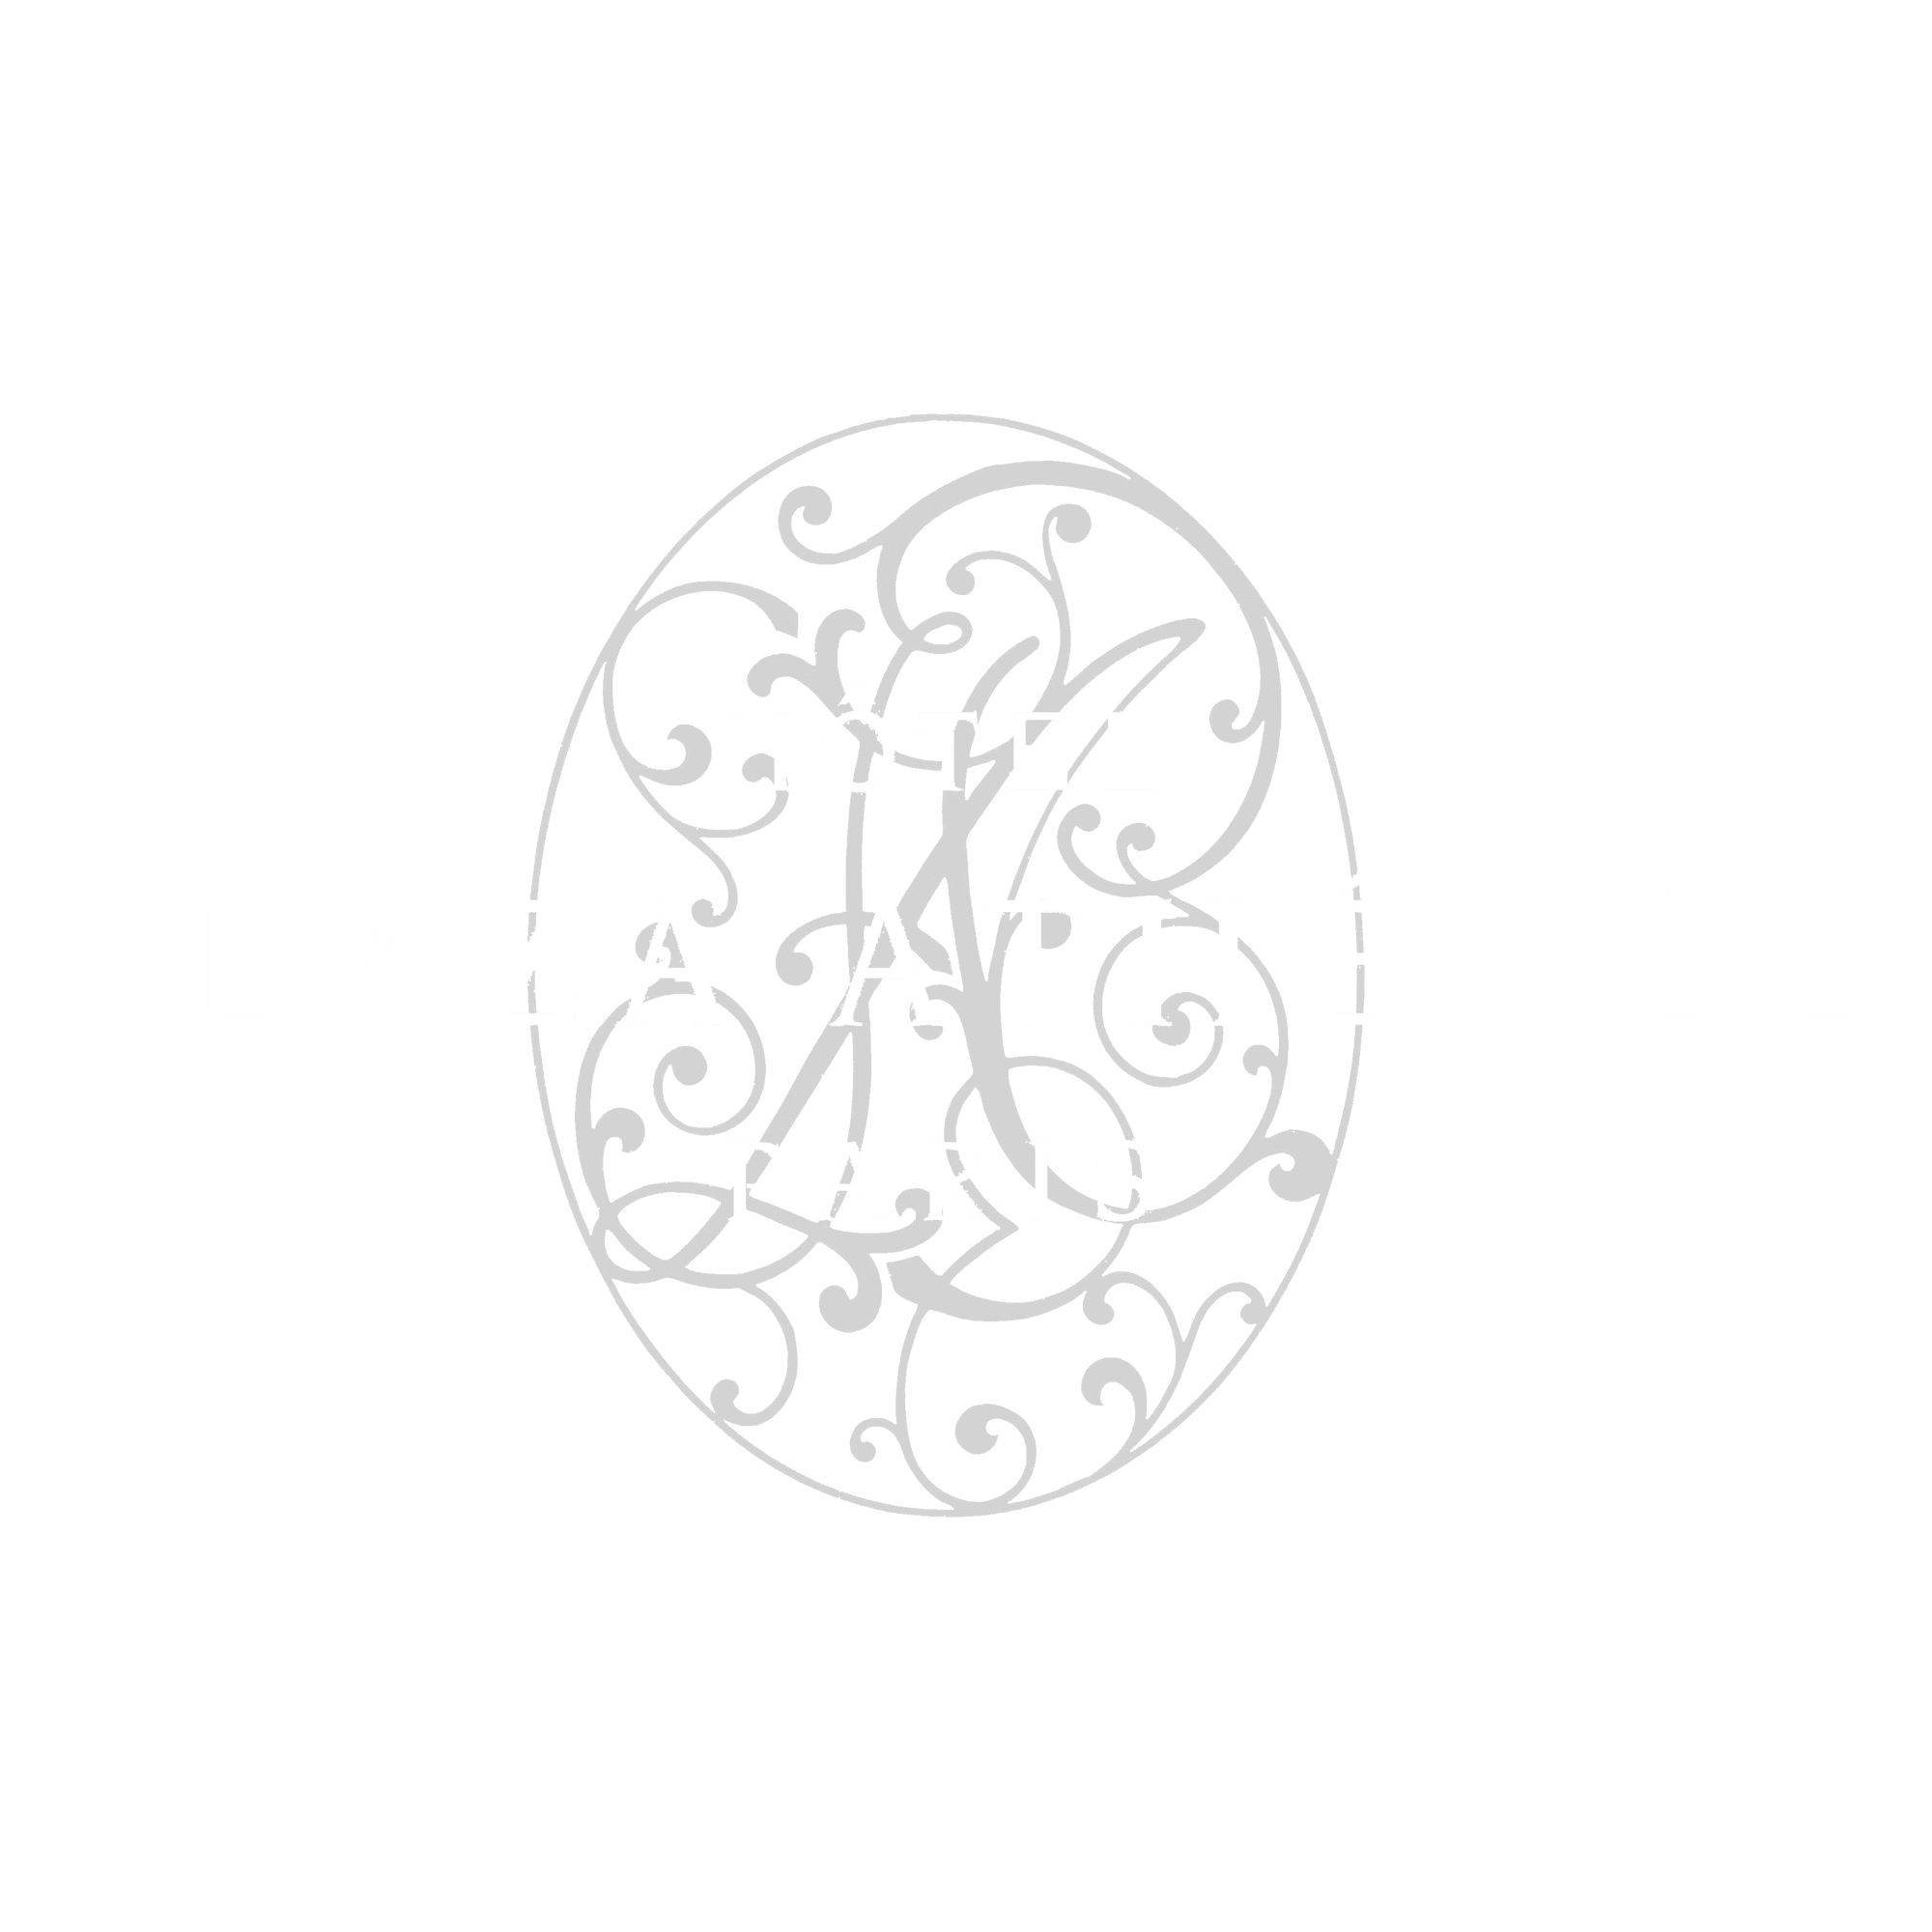 2000px-Plaza.png